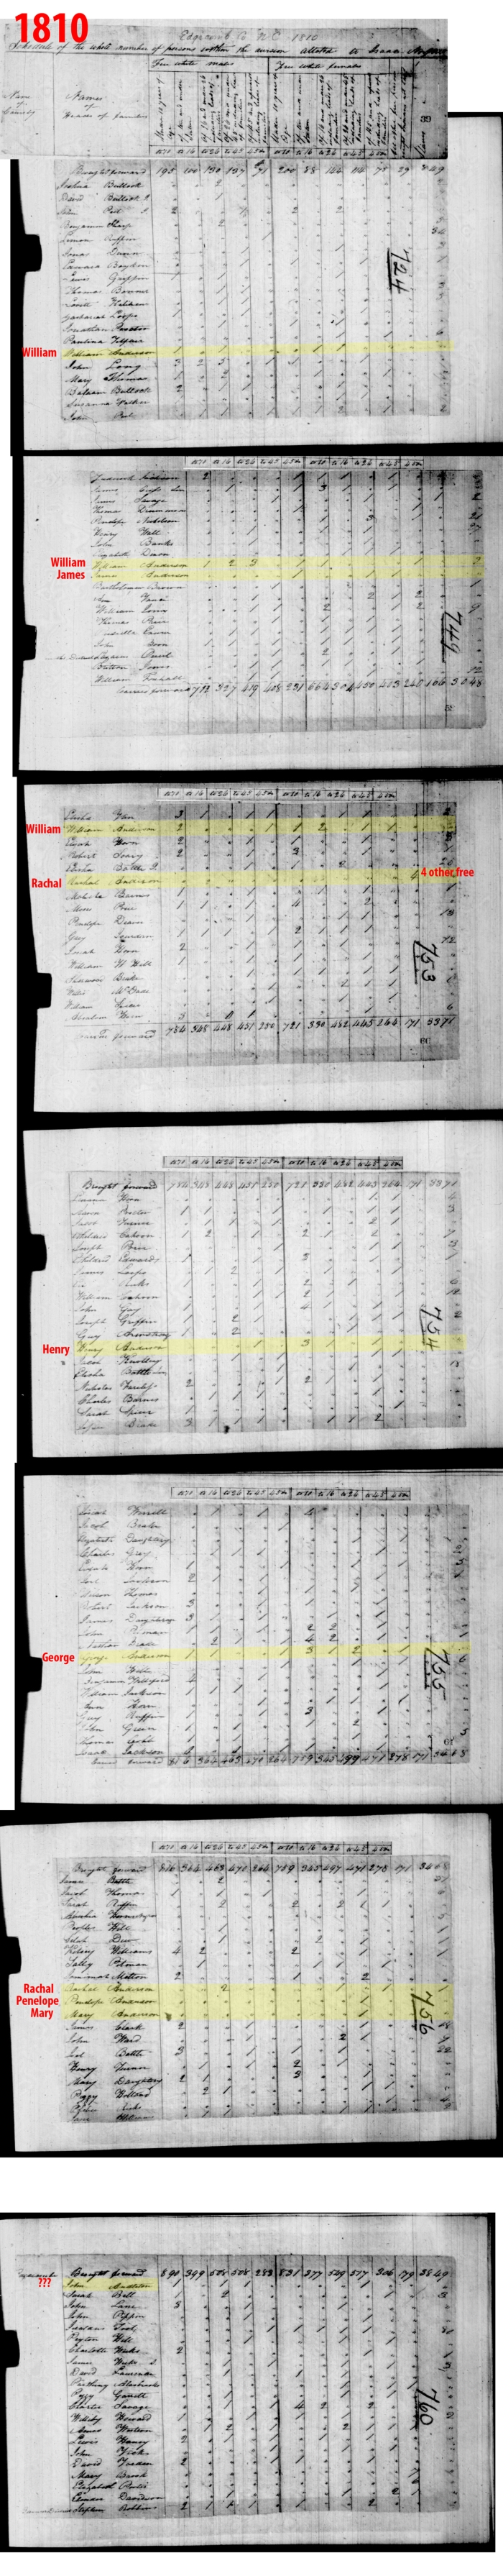 1810 census copy